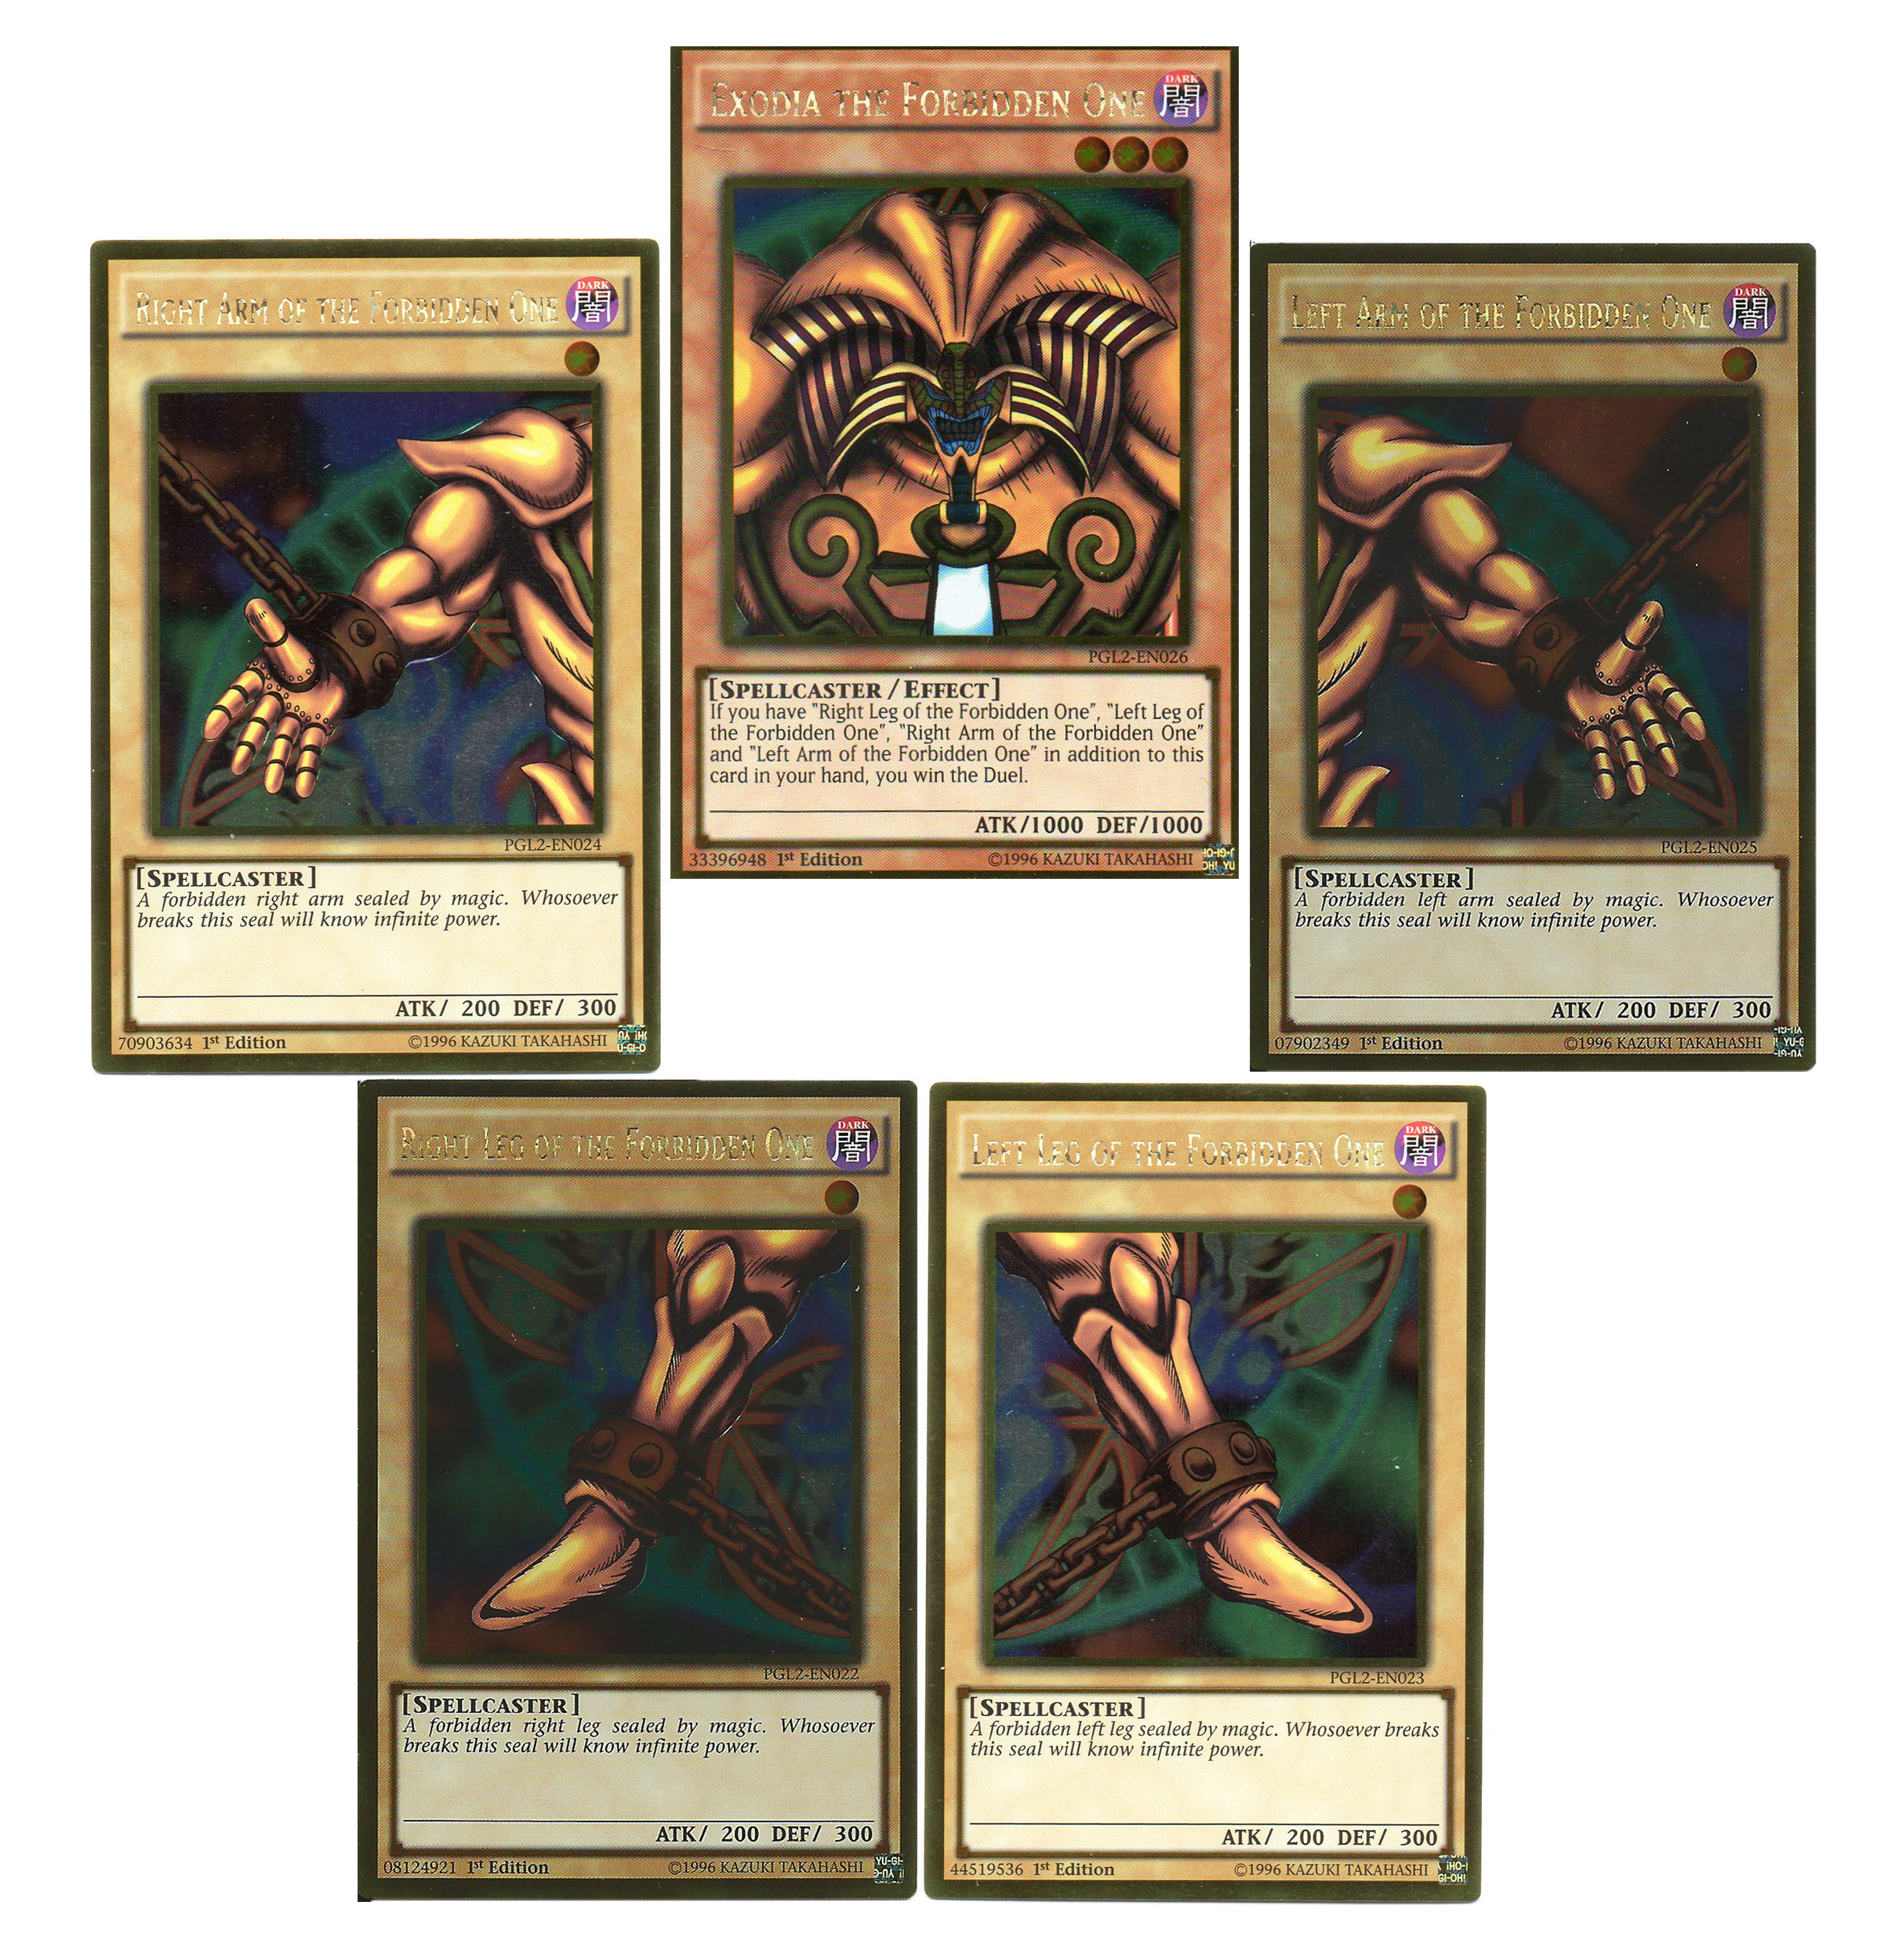 YuGiOh Exodia the Forbidden One Full Card Set Premium Gold Return of the Bling Edition